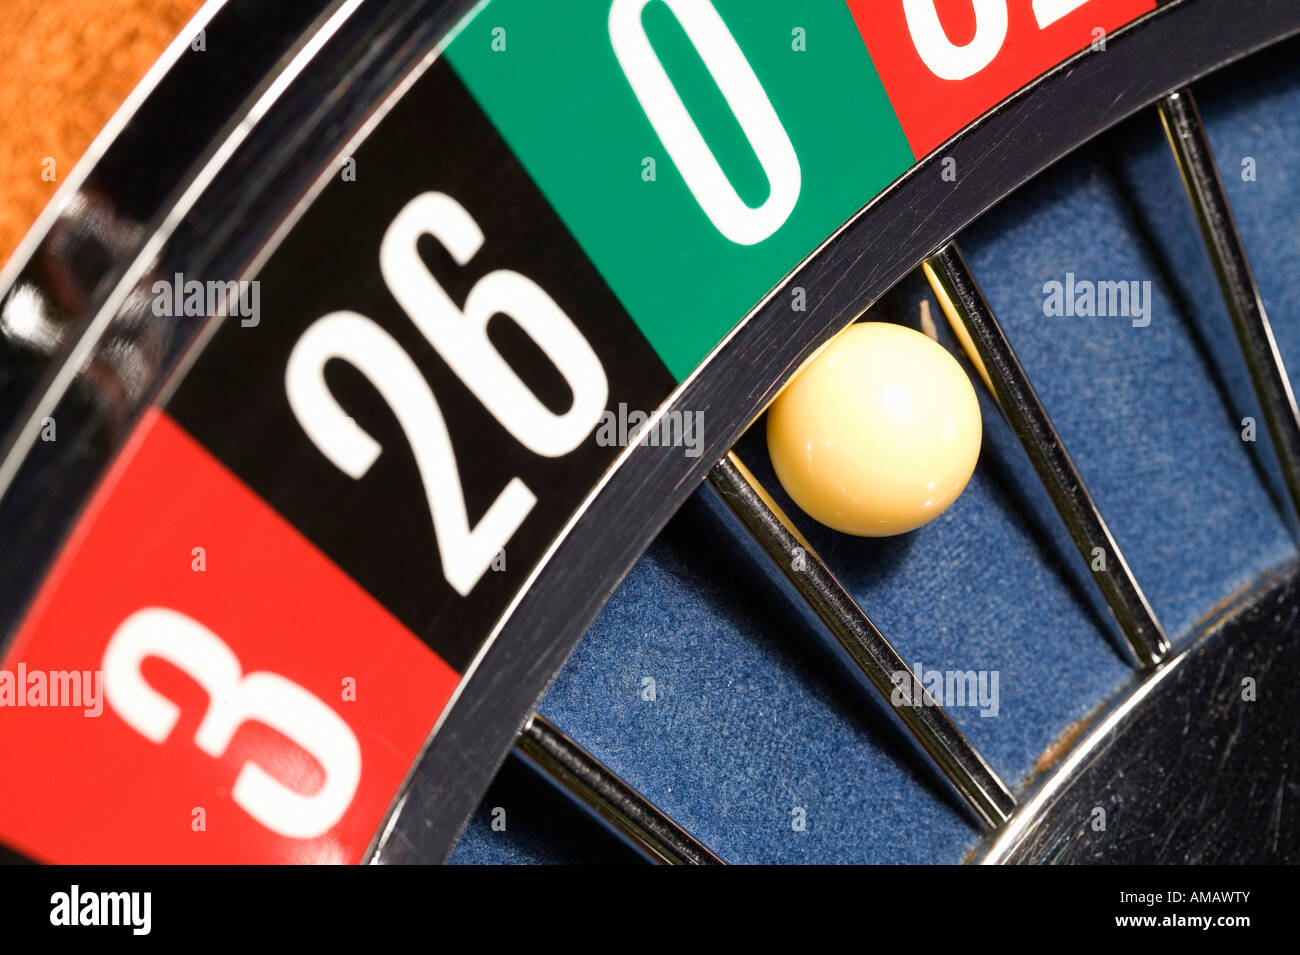 Roulette wheel close up - Stock Image